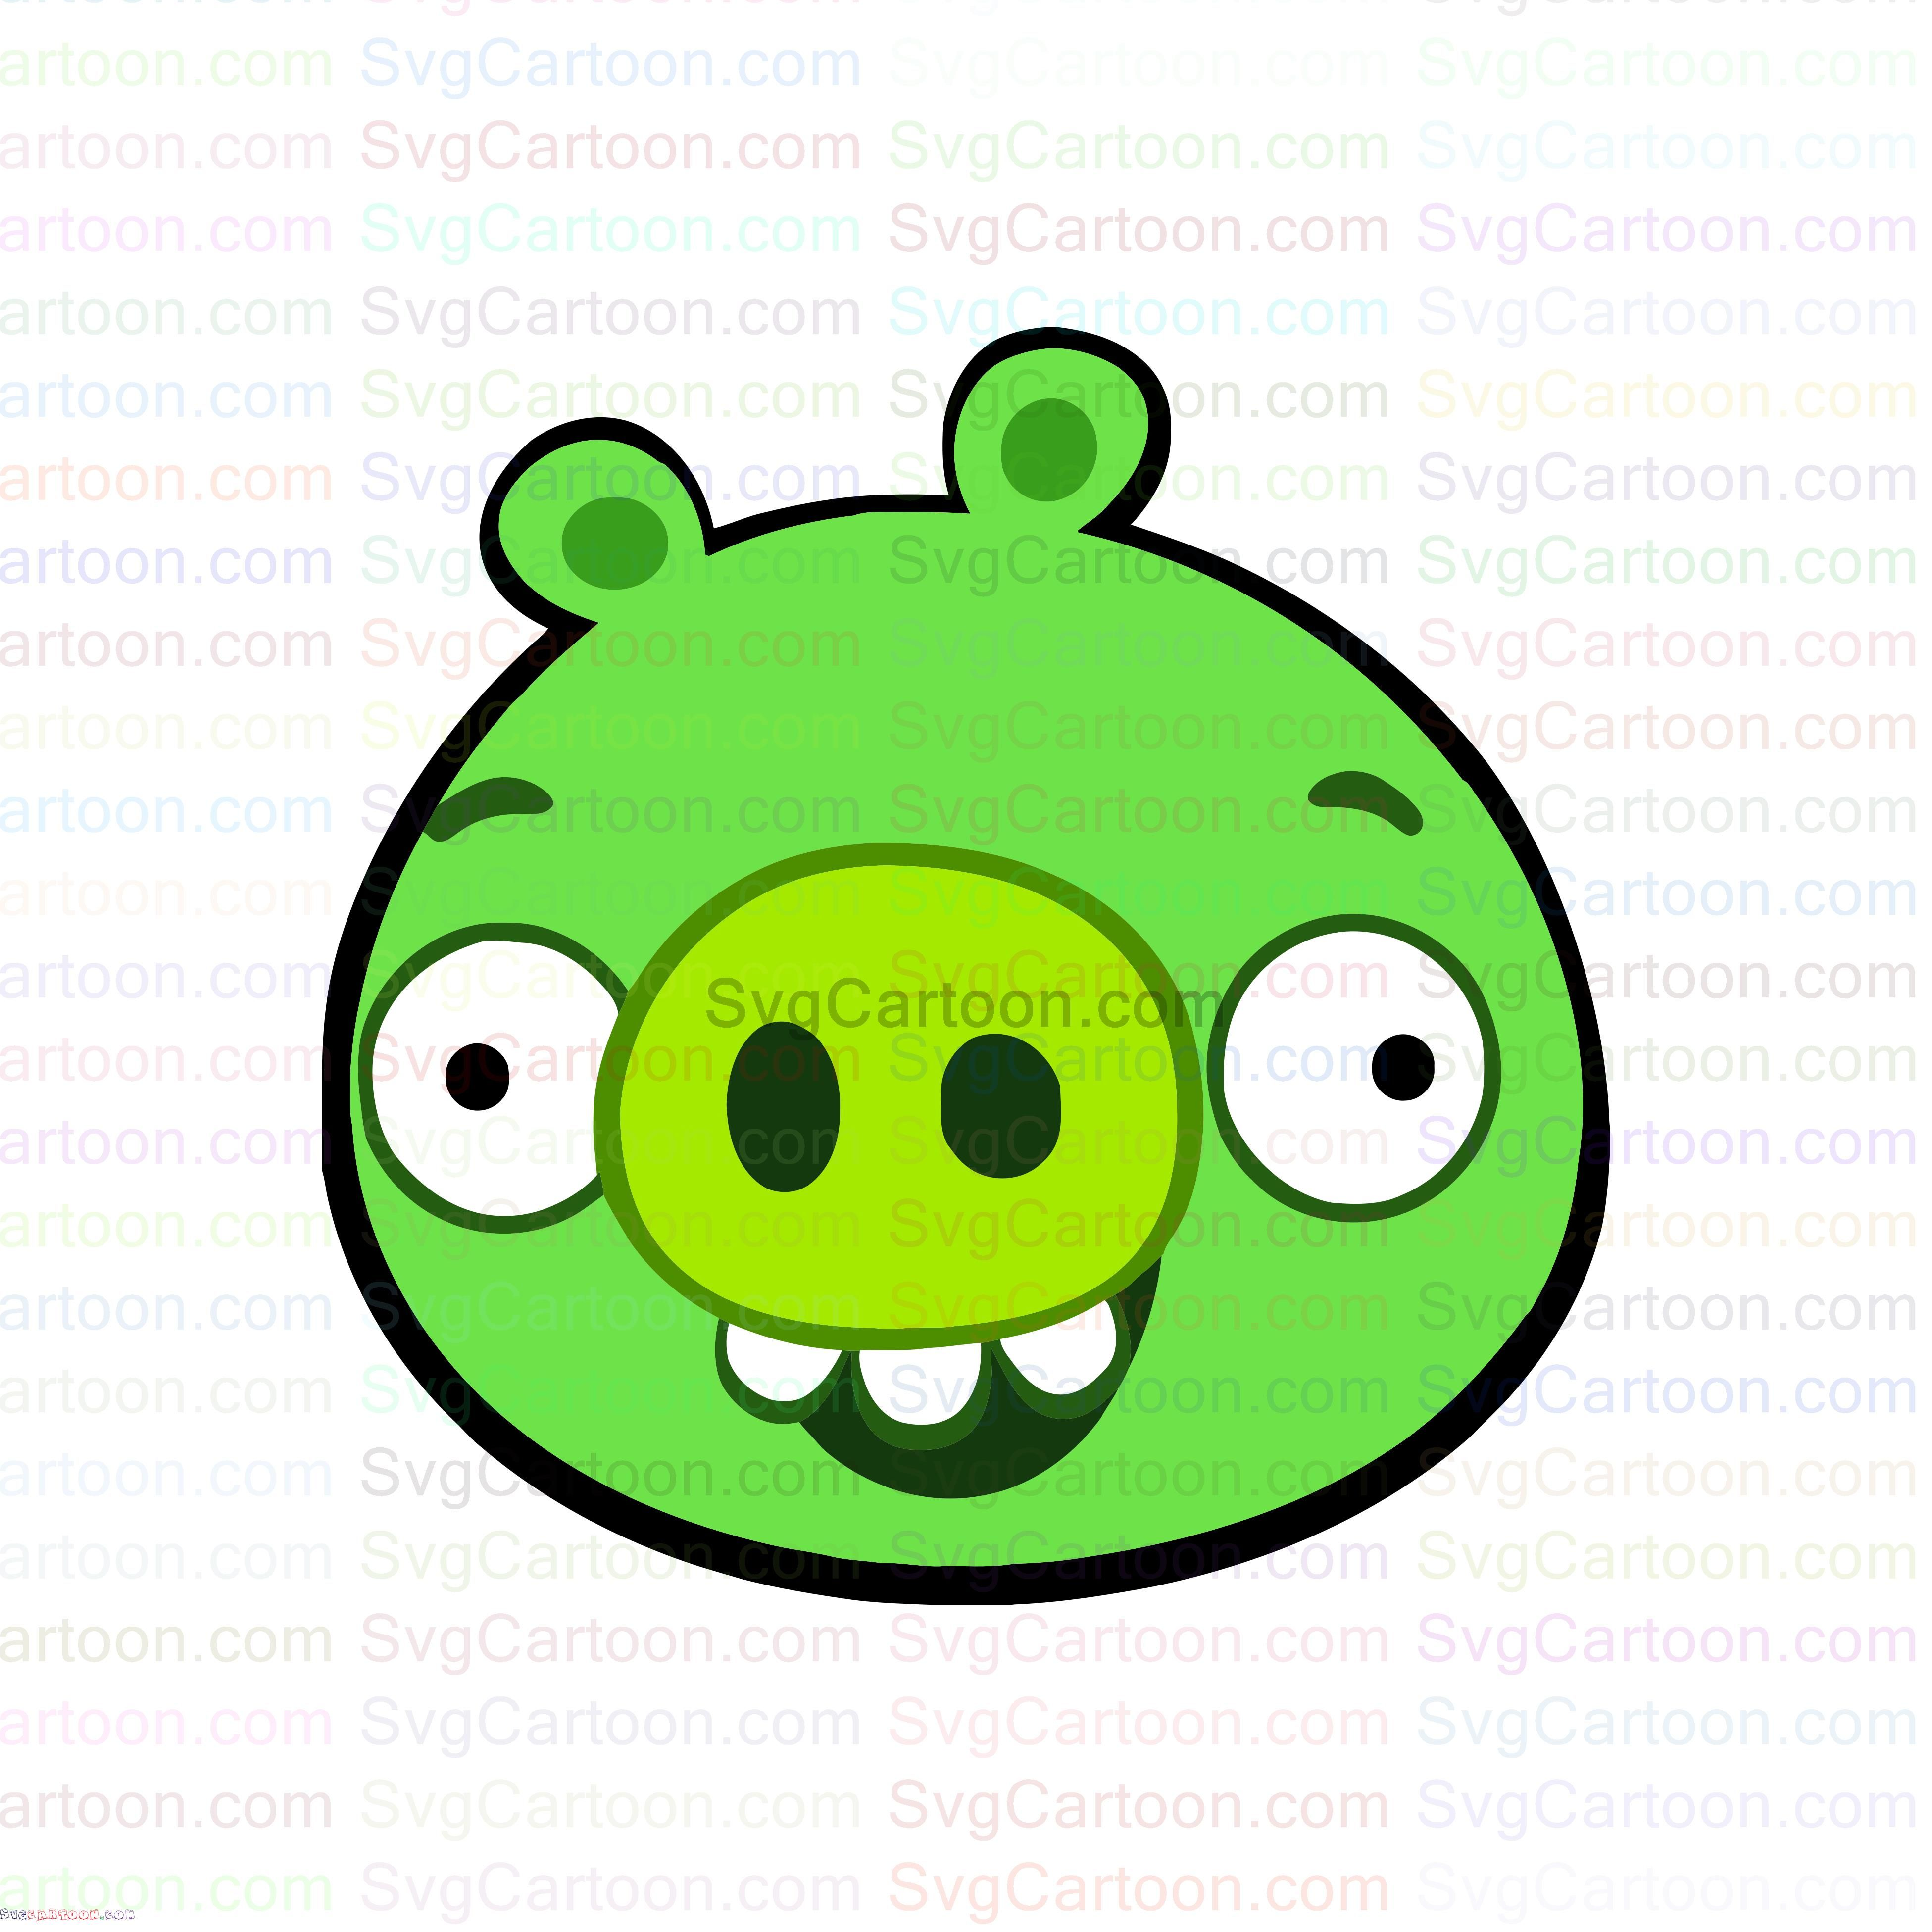 Minion Pig Face Smiley Angry Birds Svg Dxf Eps Pdf Png Pig Face Angry Birds Pigs Minions